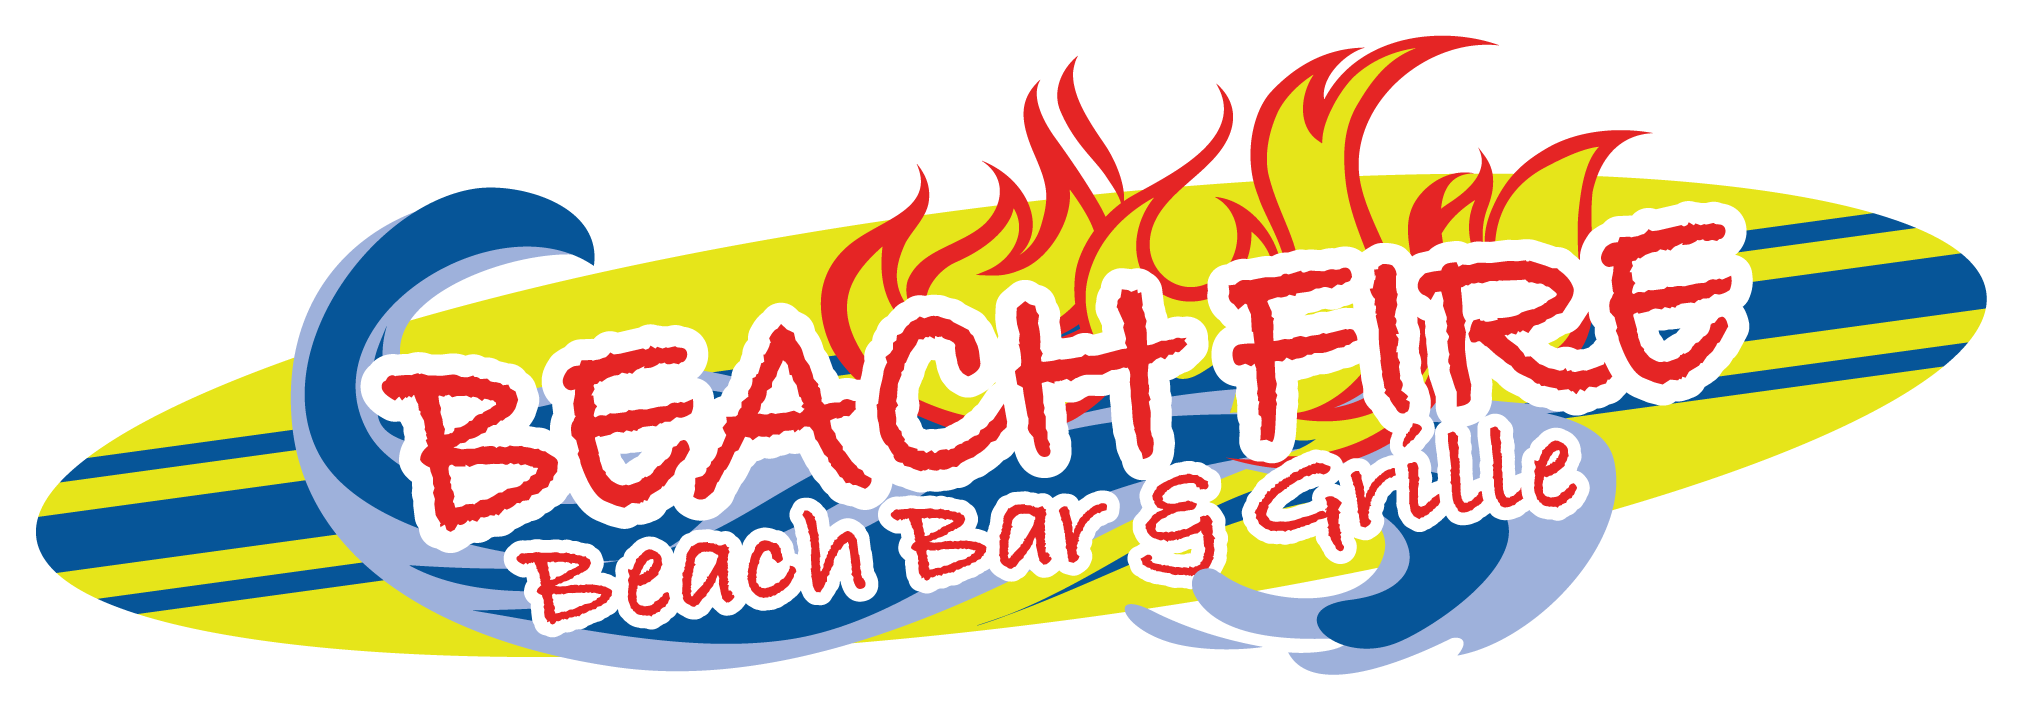 Beach Fire Beach Bar & Grille, Clearwater